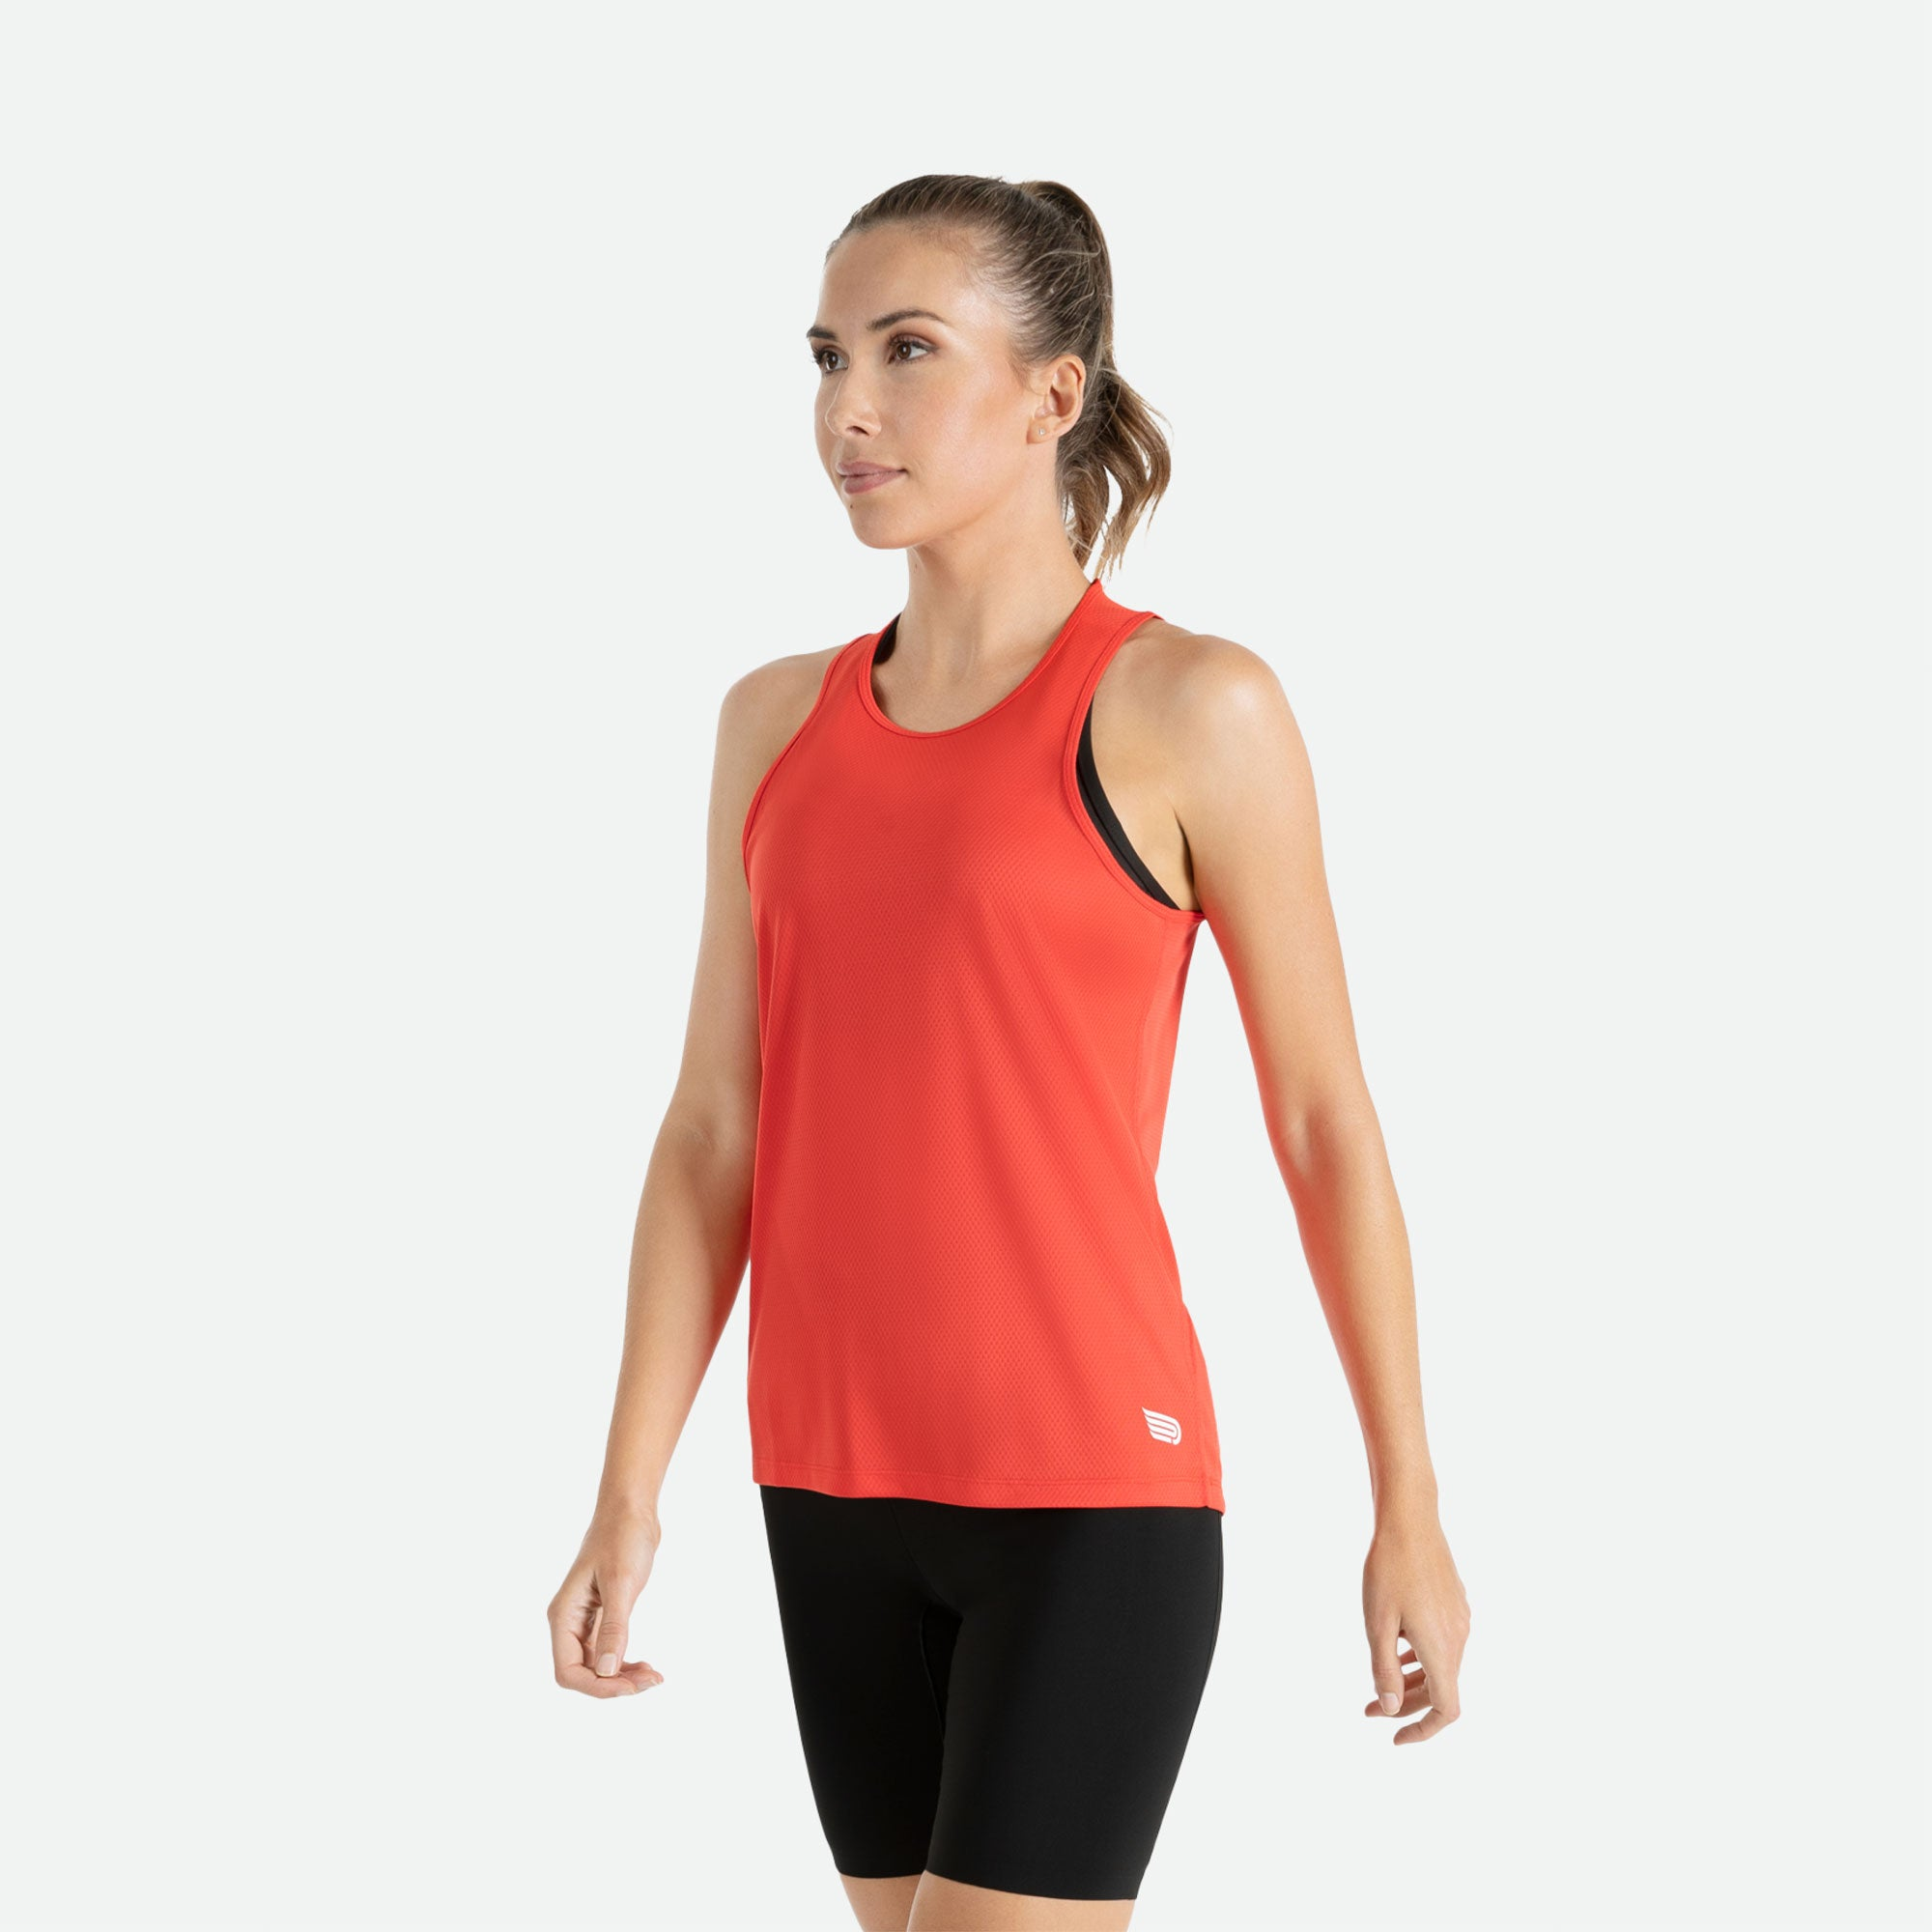 Our Pressio women's red Hāpai wideback singlet features EcoTECH MF fabric which has dual filament recycled polyester yarns from Unifi for superior moisture control to keep you dry.